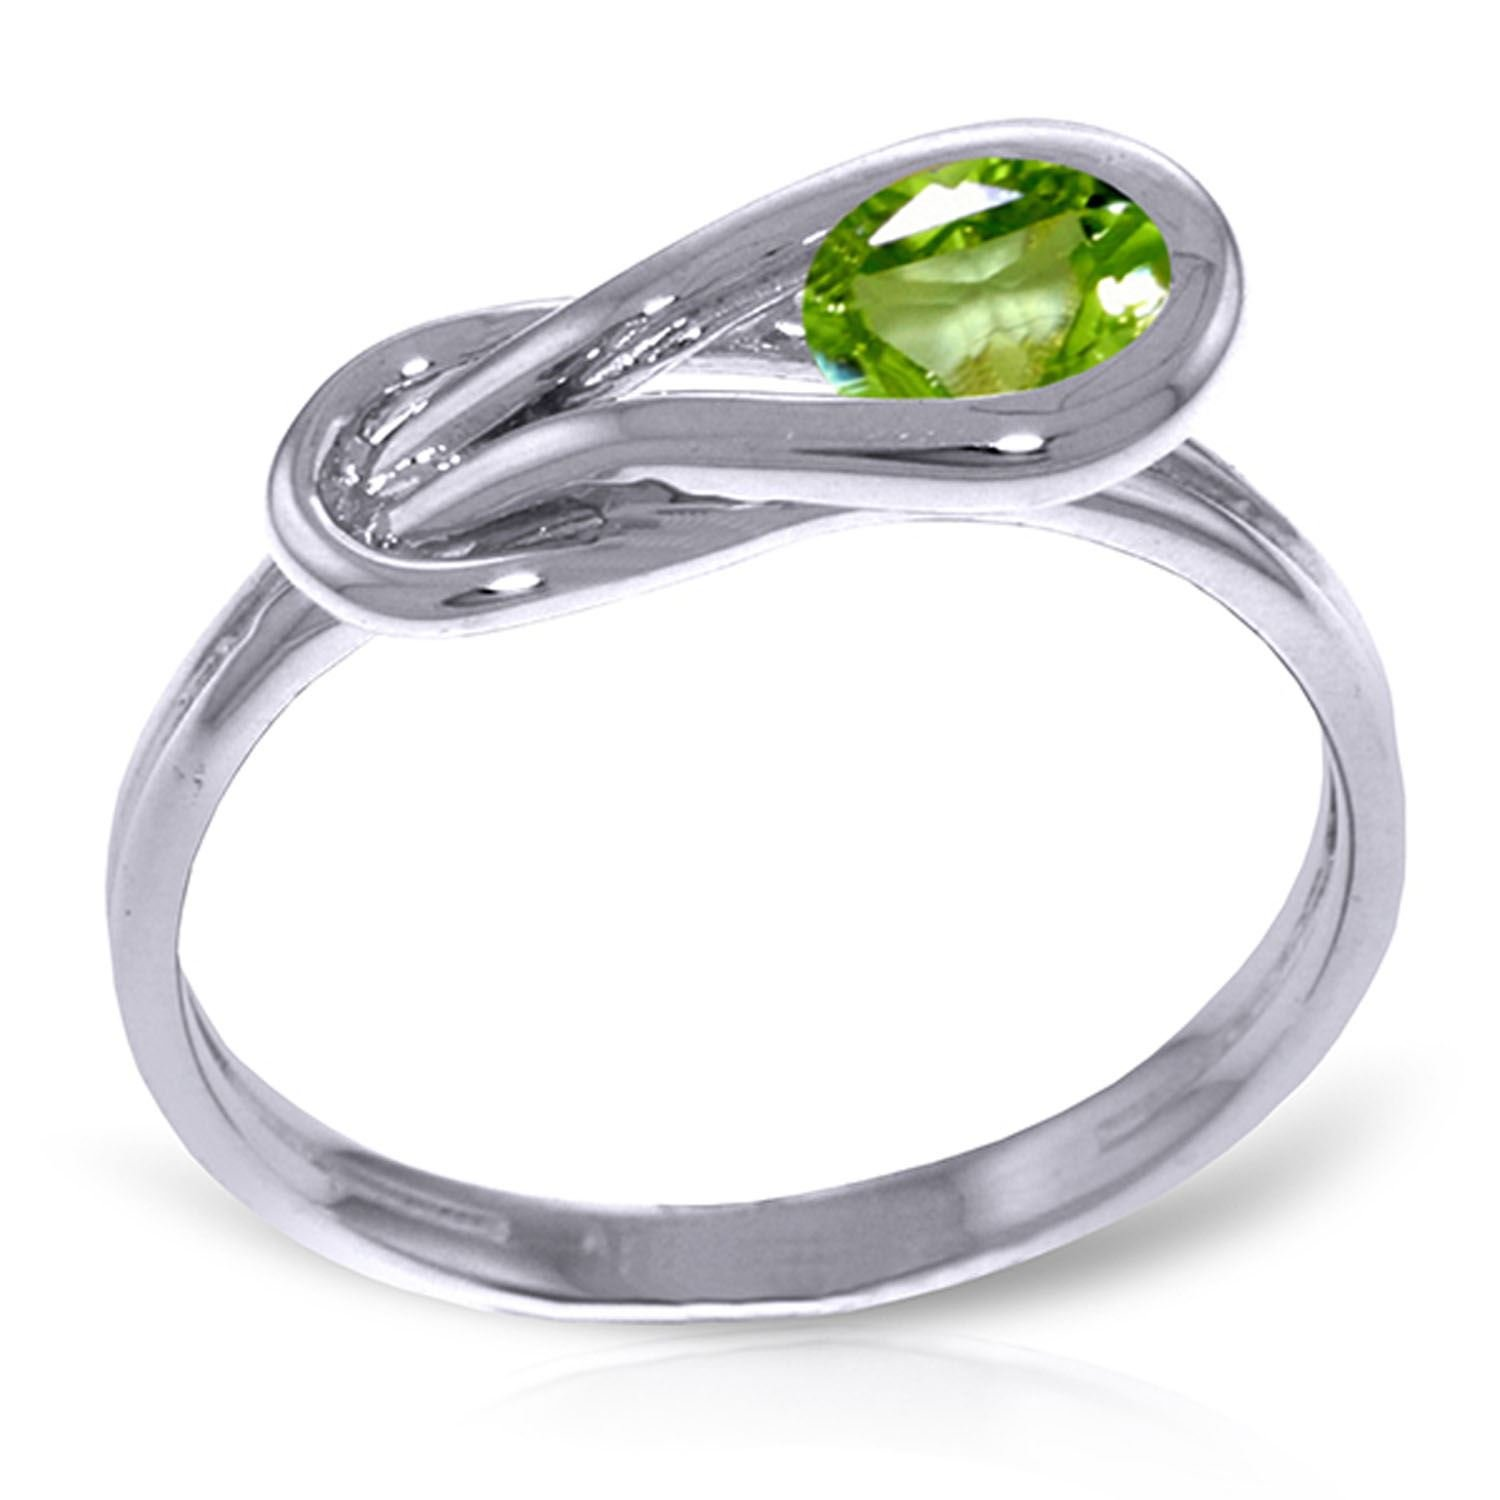 ALARRI 0.65 CTW 14K Solid White Gold Pray For Love Peridot Ring With Ring Size 6.5